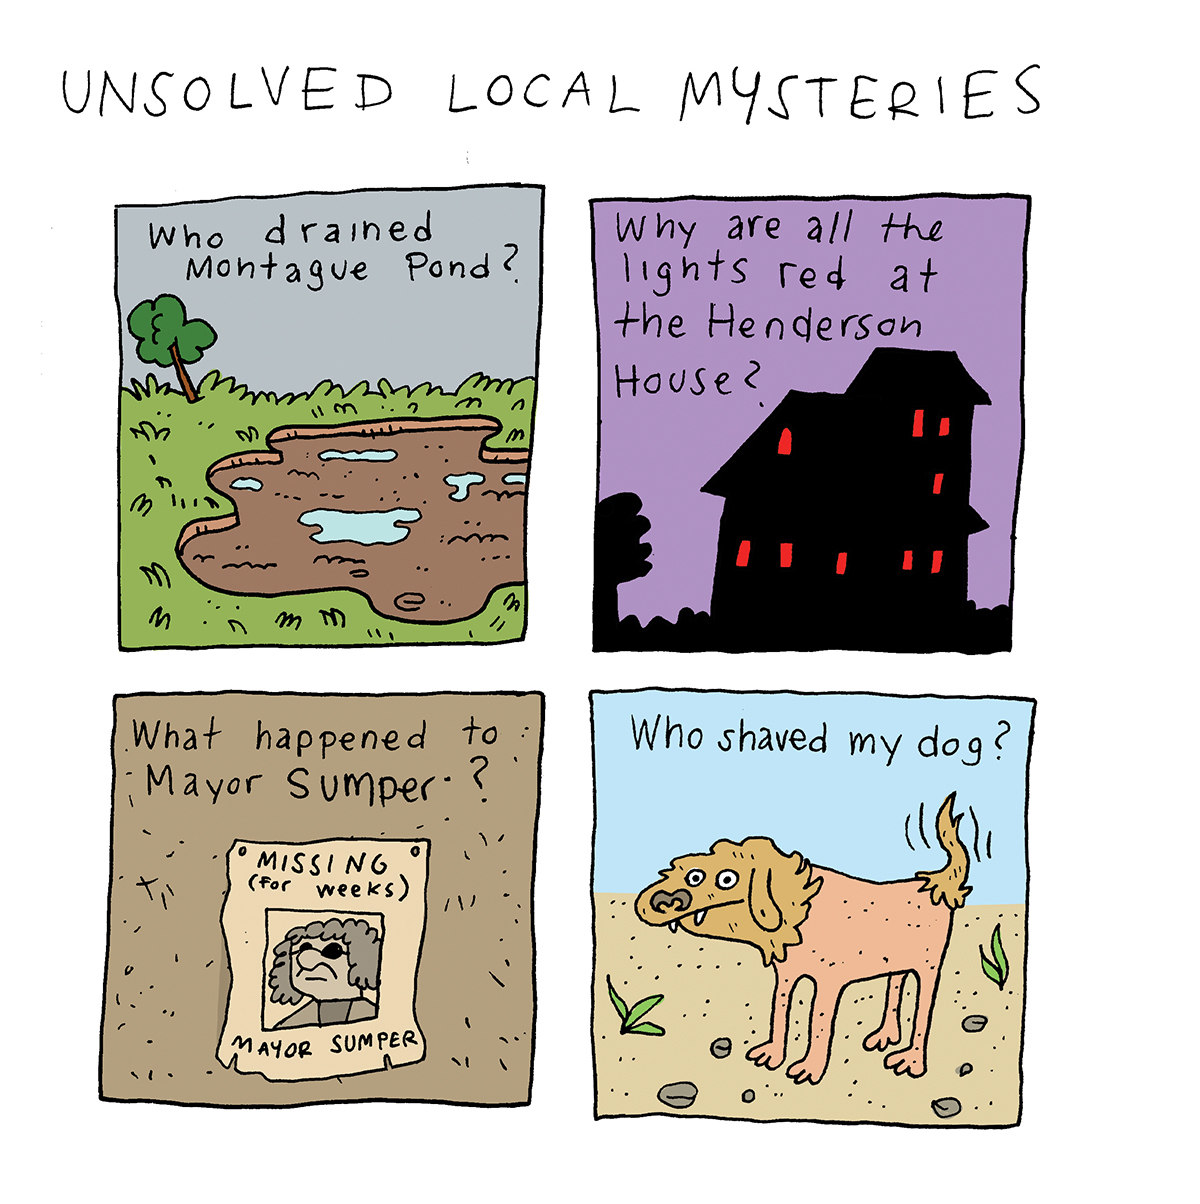 Local Mystery